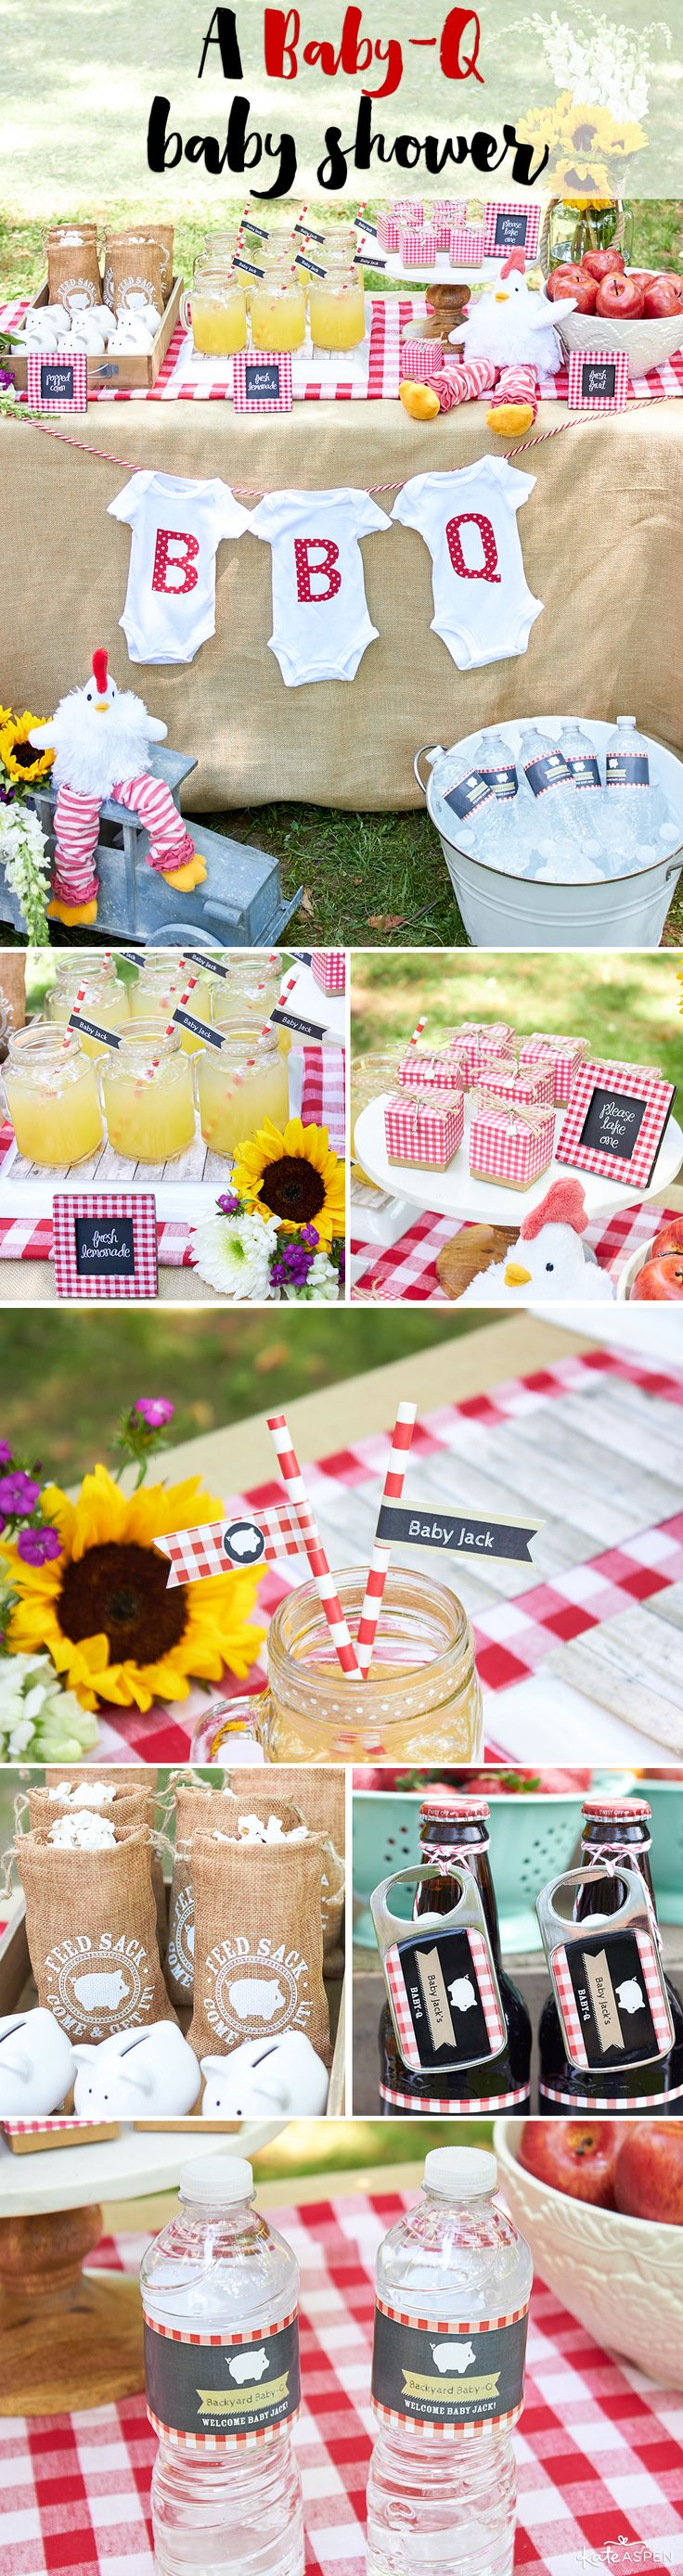 Best 25 Baby q shower ideas on Pinterest